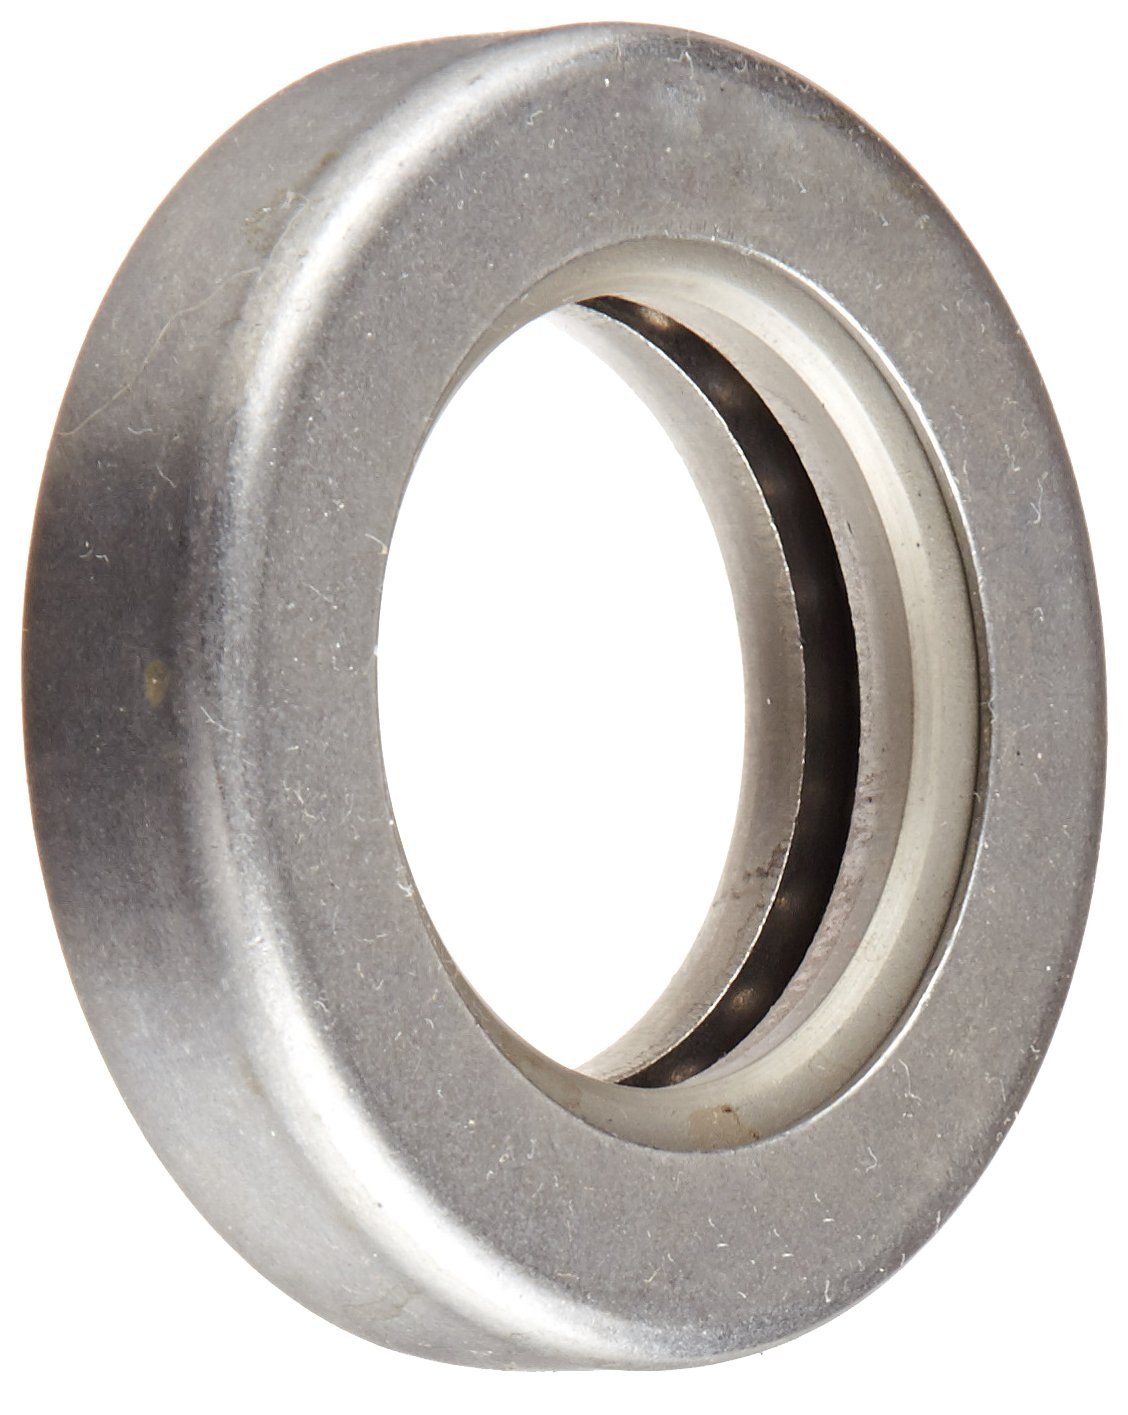 1.5000 Bore x 2.5938 OD x 0.6250 Width Case Hardened Carbon Steel Nice Thrust Bearing 621V Full Complement Of Balls